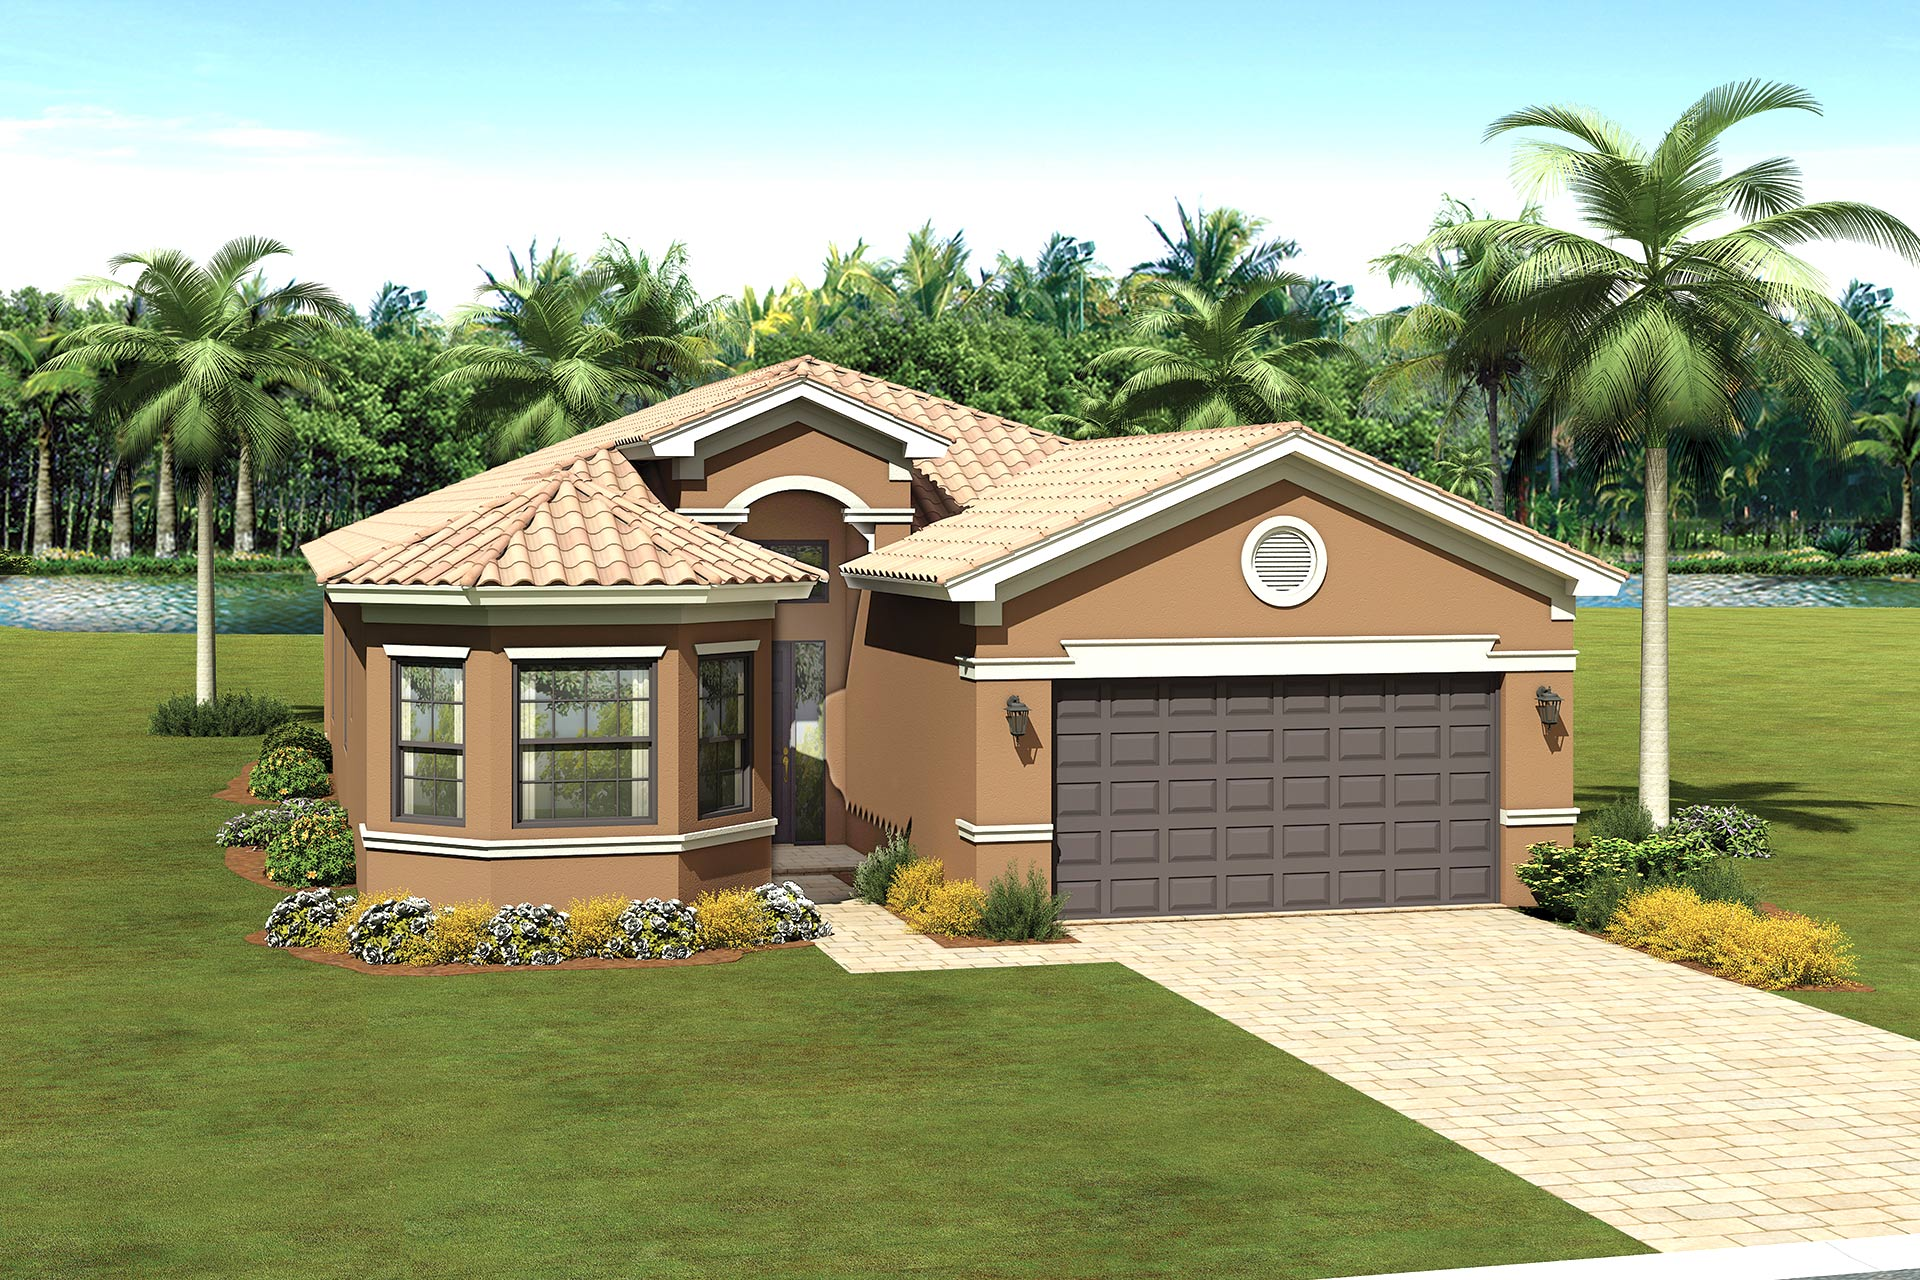 The Barbados Model Home | The Crown Collection at Valencia del Sol in Tampa, FL